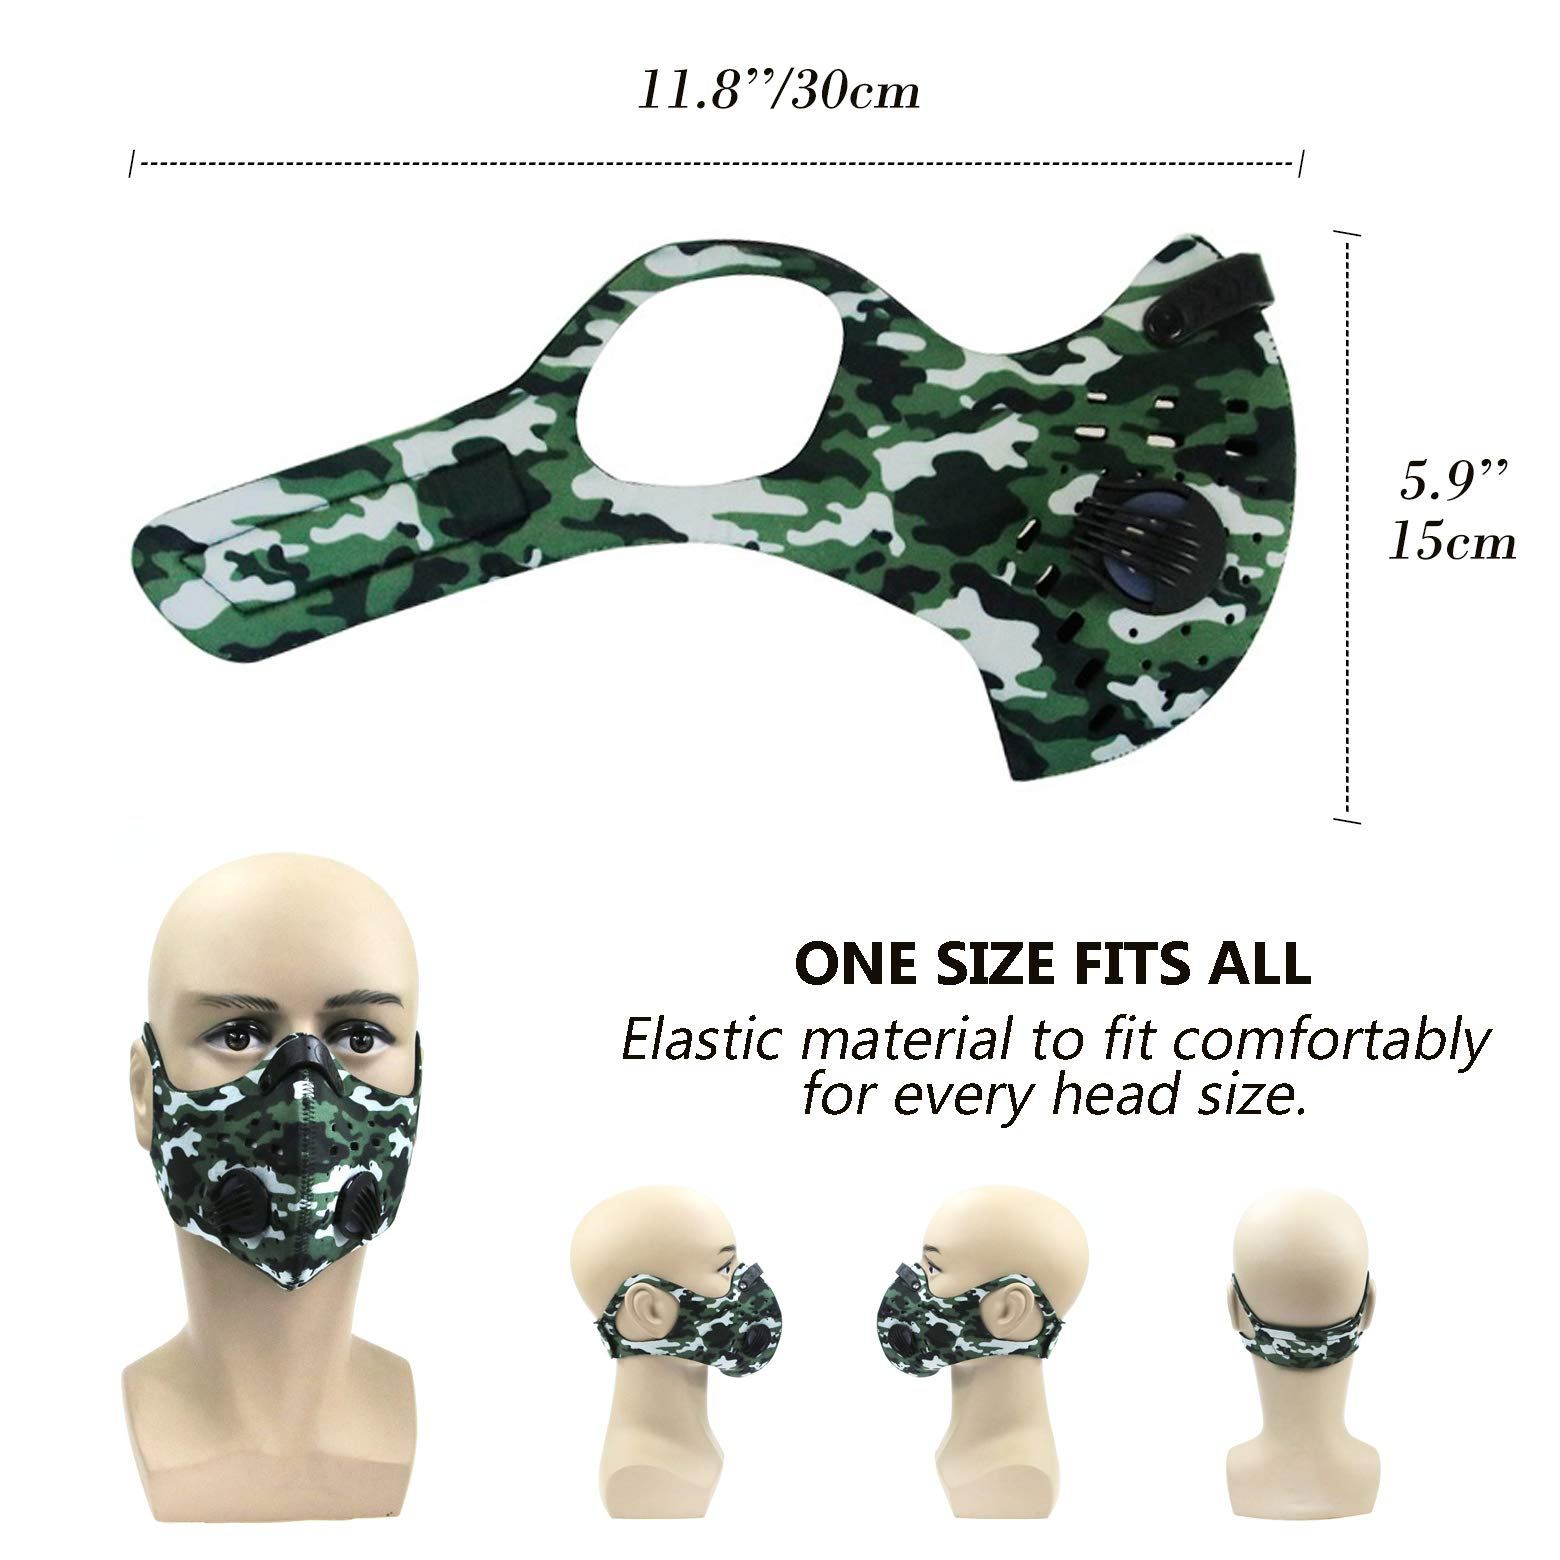 Activated Carbon Dust Mask for Breathing Clean Air, with Extra Filters, Excellent for Cycling, Running, No more Exhaust Gas, Dustproof, Anti Allergy and Pollution, PM2.5 N99, Outdoor Activities (Camo) by AirShielz (Image #4)